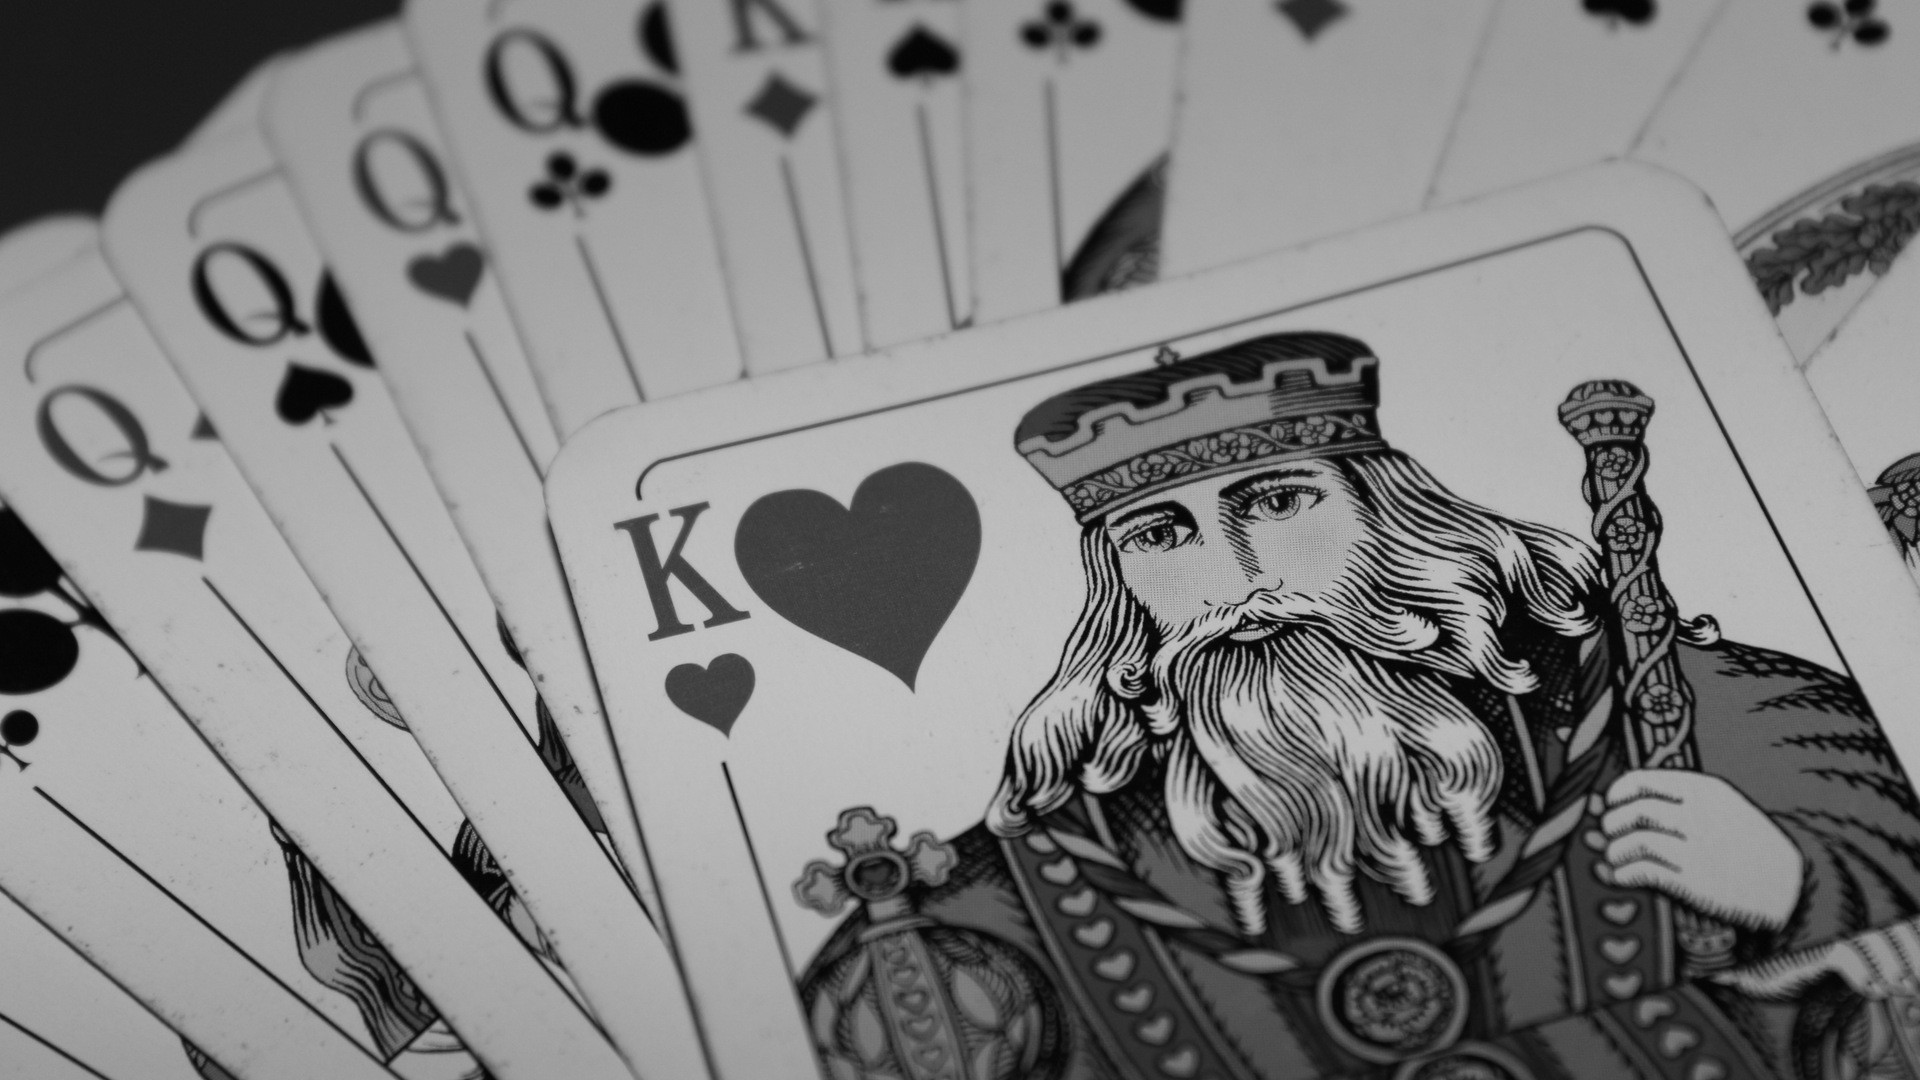 General 1920x1080 playing cards king monochrome